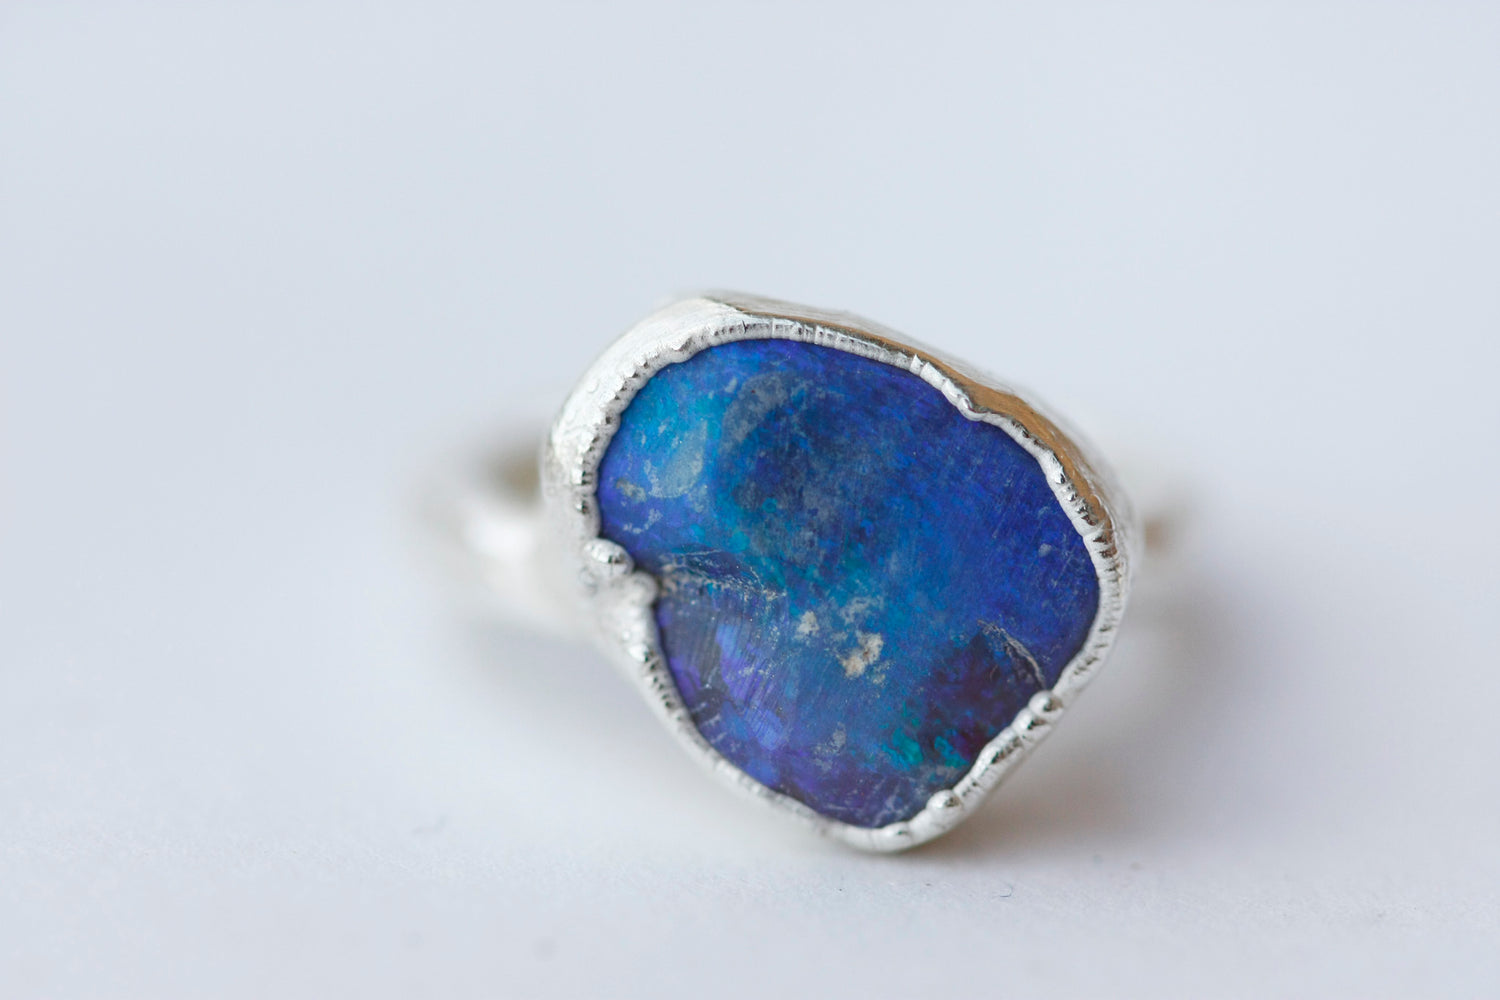 Opal Ring #44 - Little Sycamore